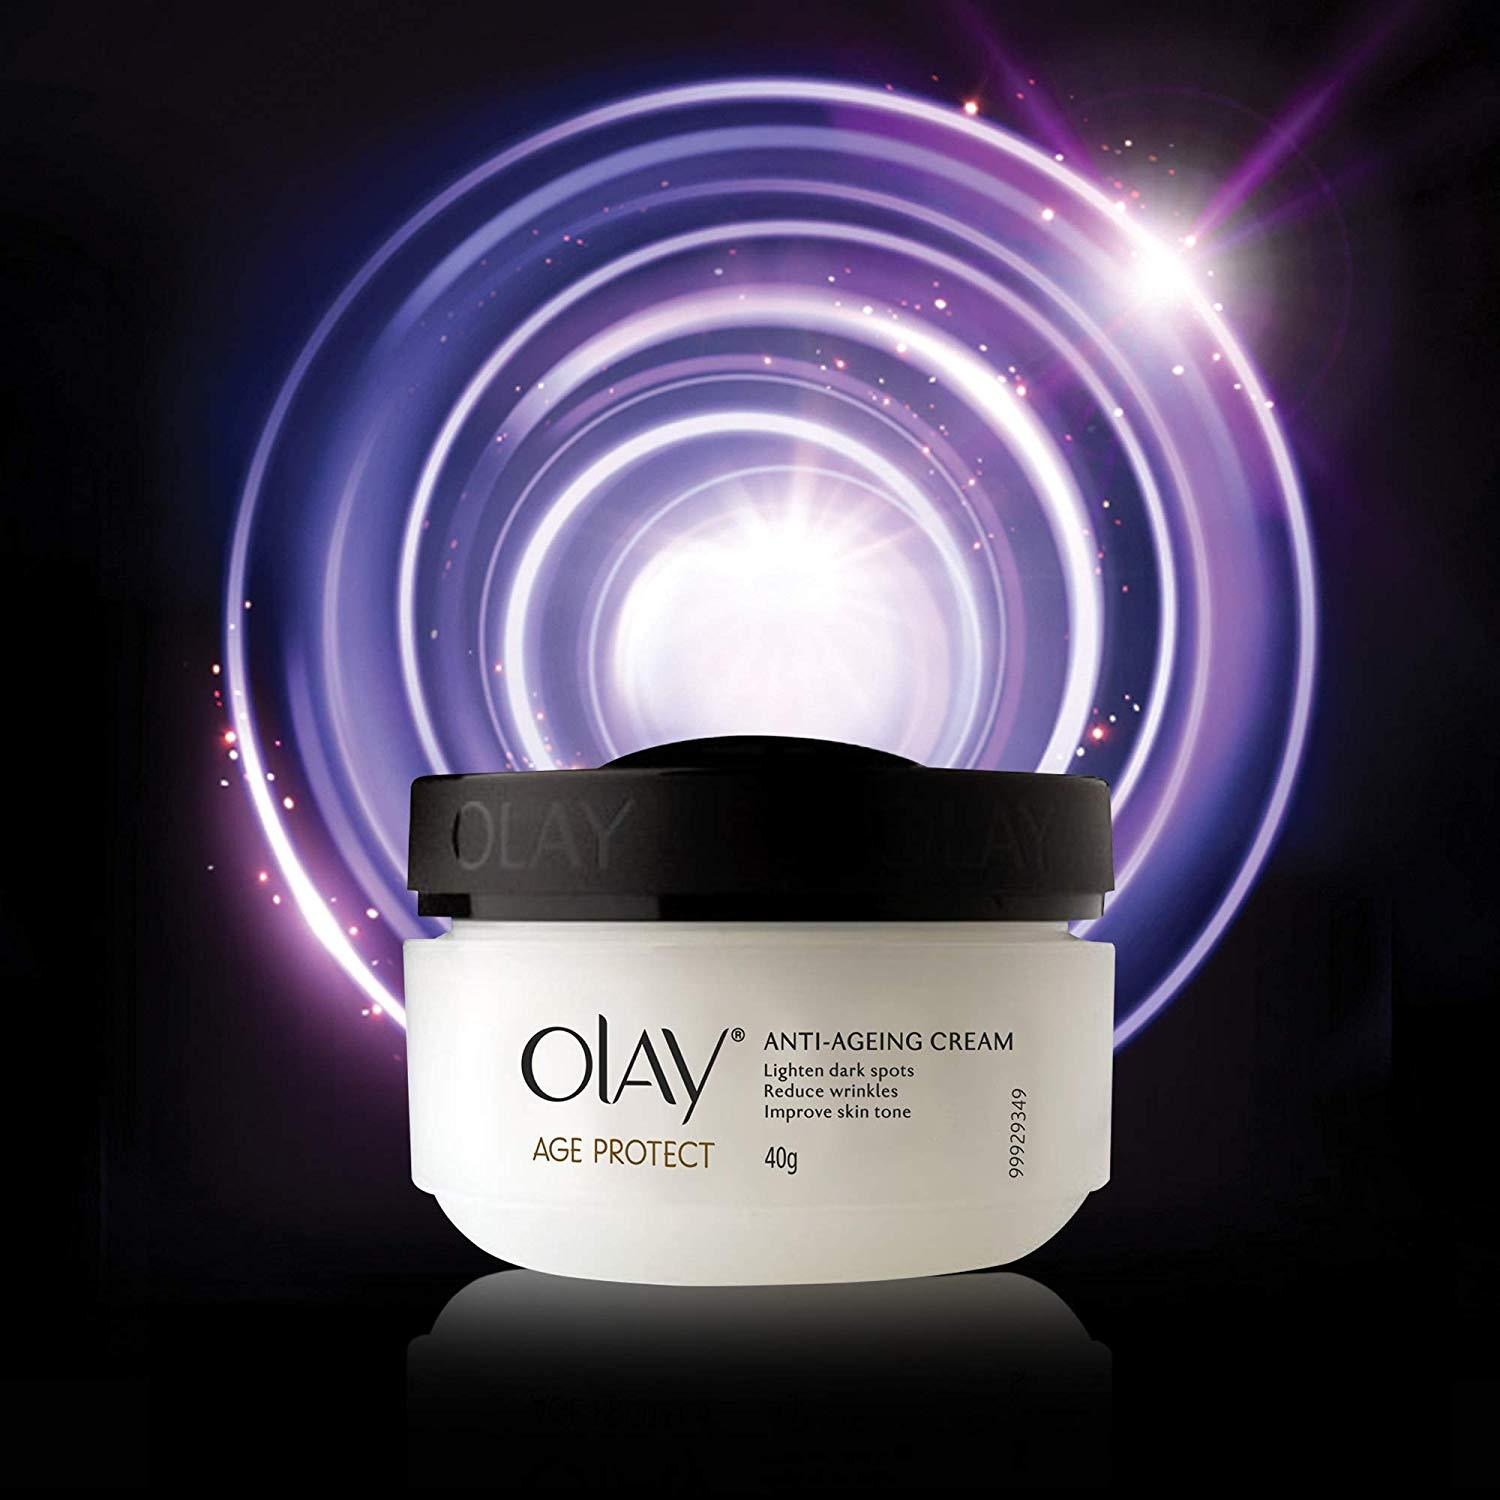 Olay Age Protect Anti Ageing Cream, 40gm Reduces Wrinkle Removes Dark Spot